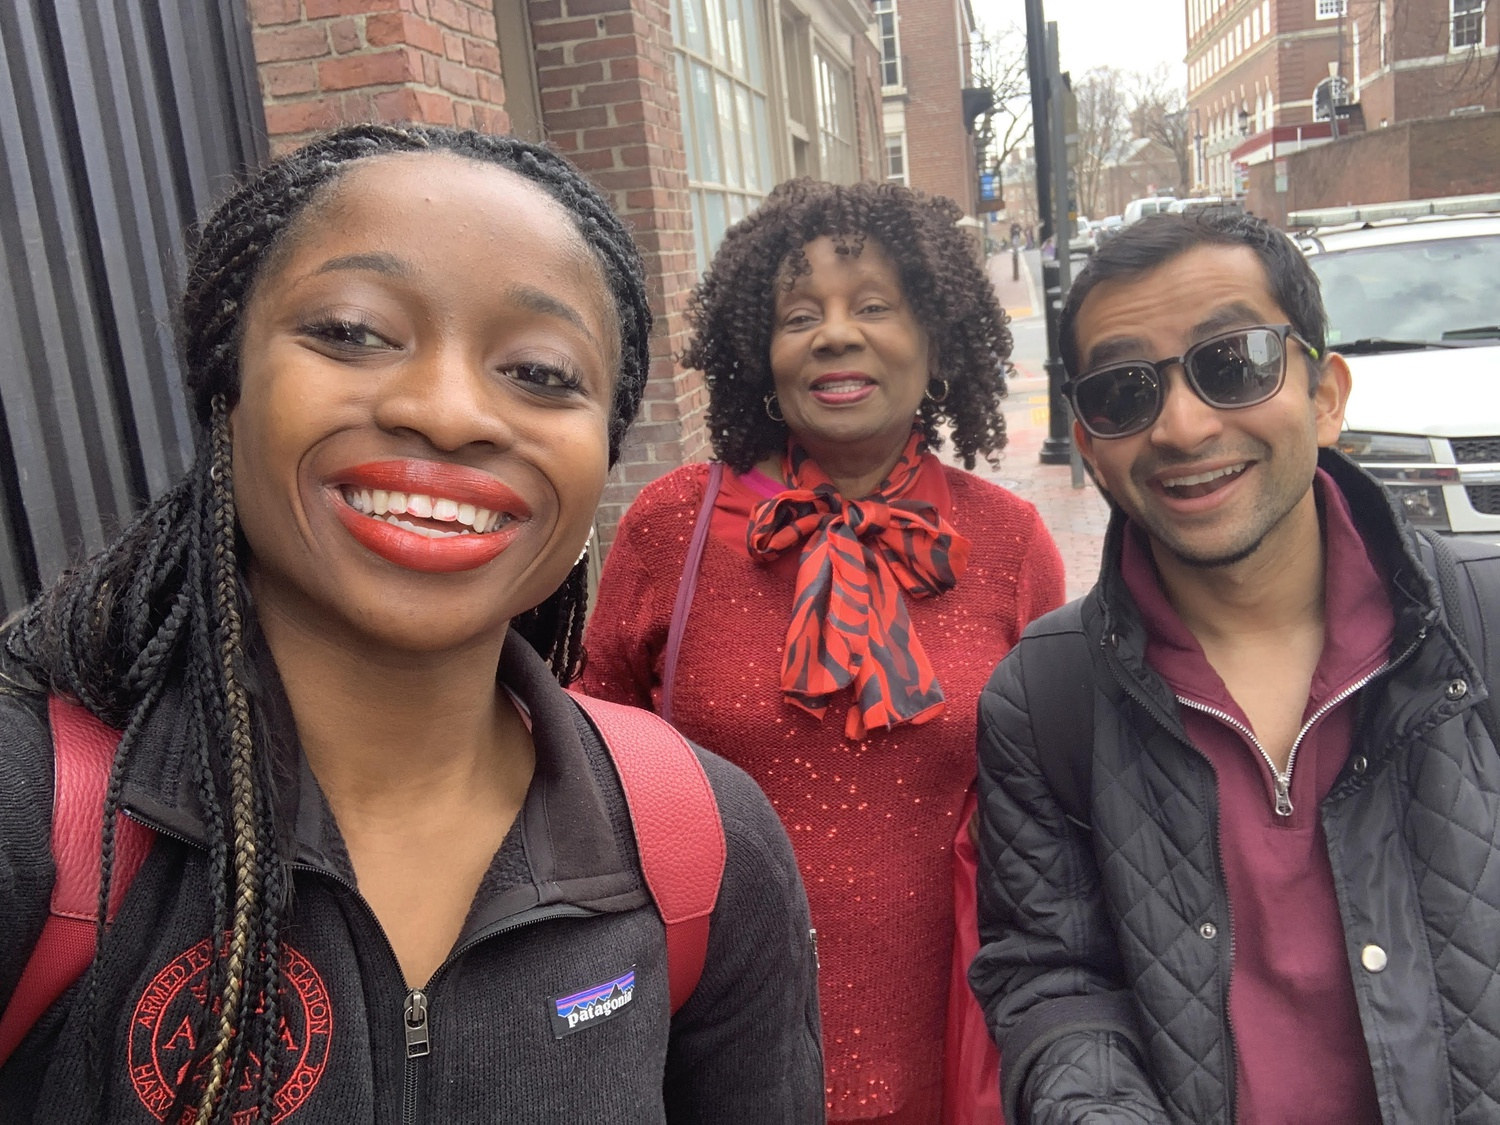 Jackson and Mahmud with Jackson's mother. The pair of newly elected student body presidents have known each other since their time at the College, when they were blockmates.